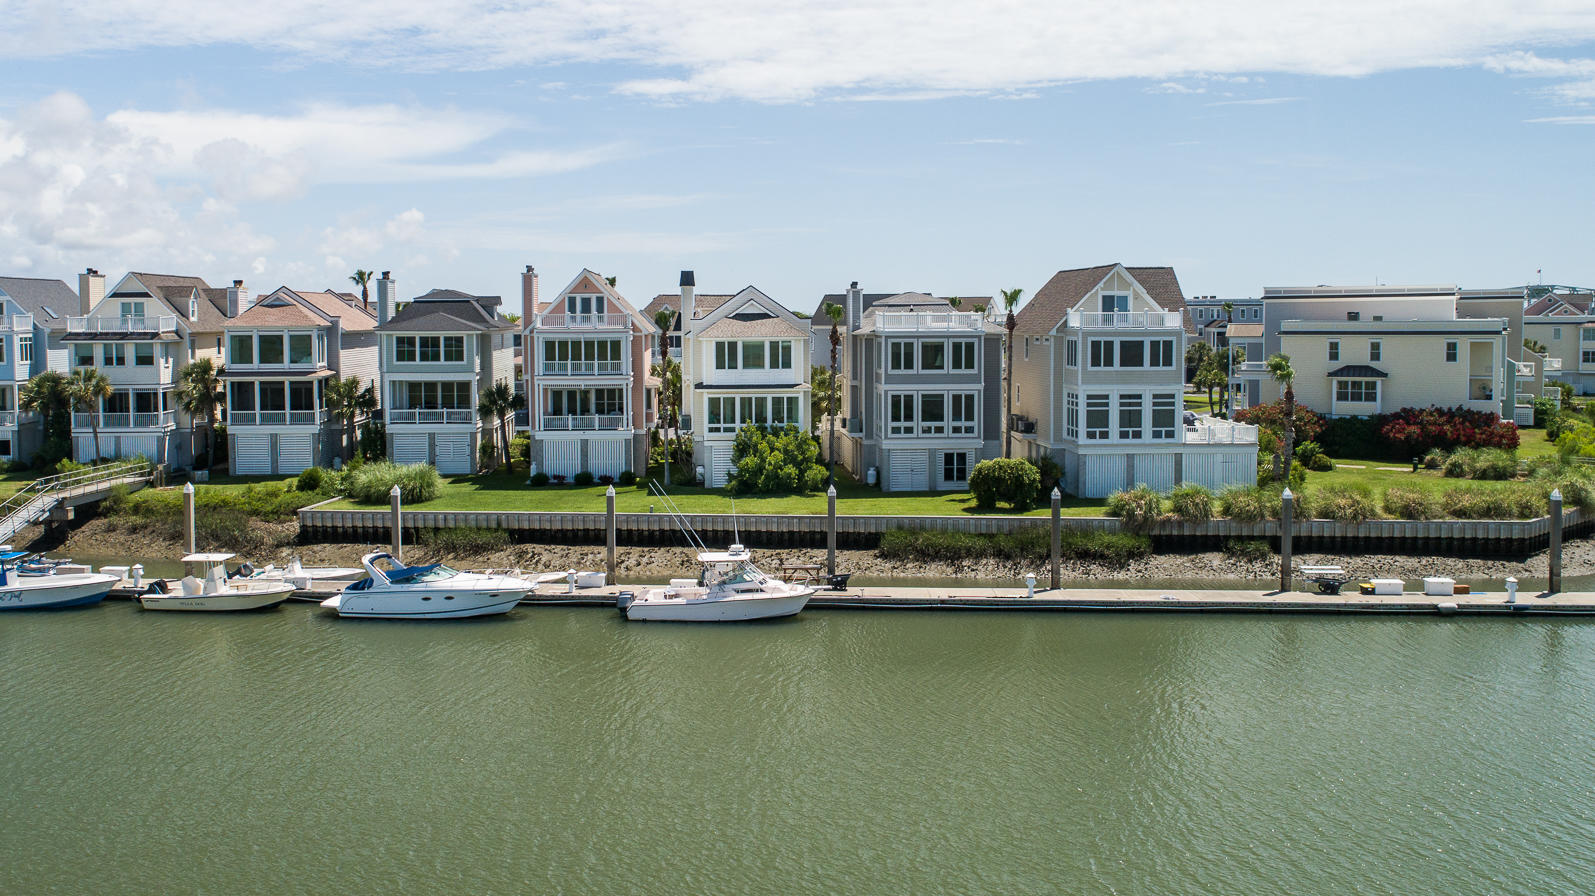 Tolers Cove Homes For Sale - B-4 & B-5 Tolers Cove Marina 70ft + Home, Mount Pleasant, SC - 37